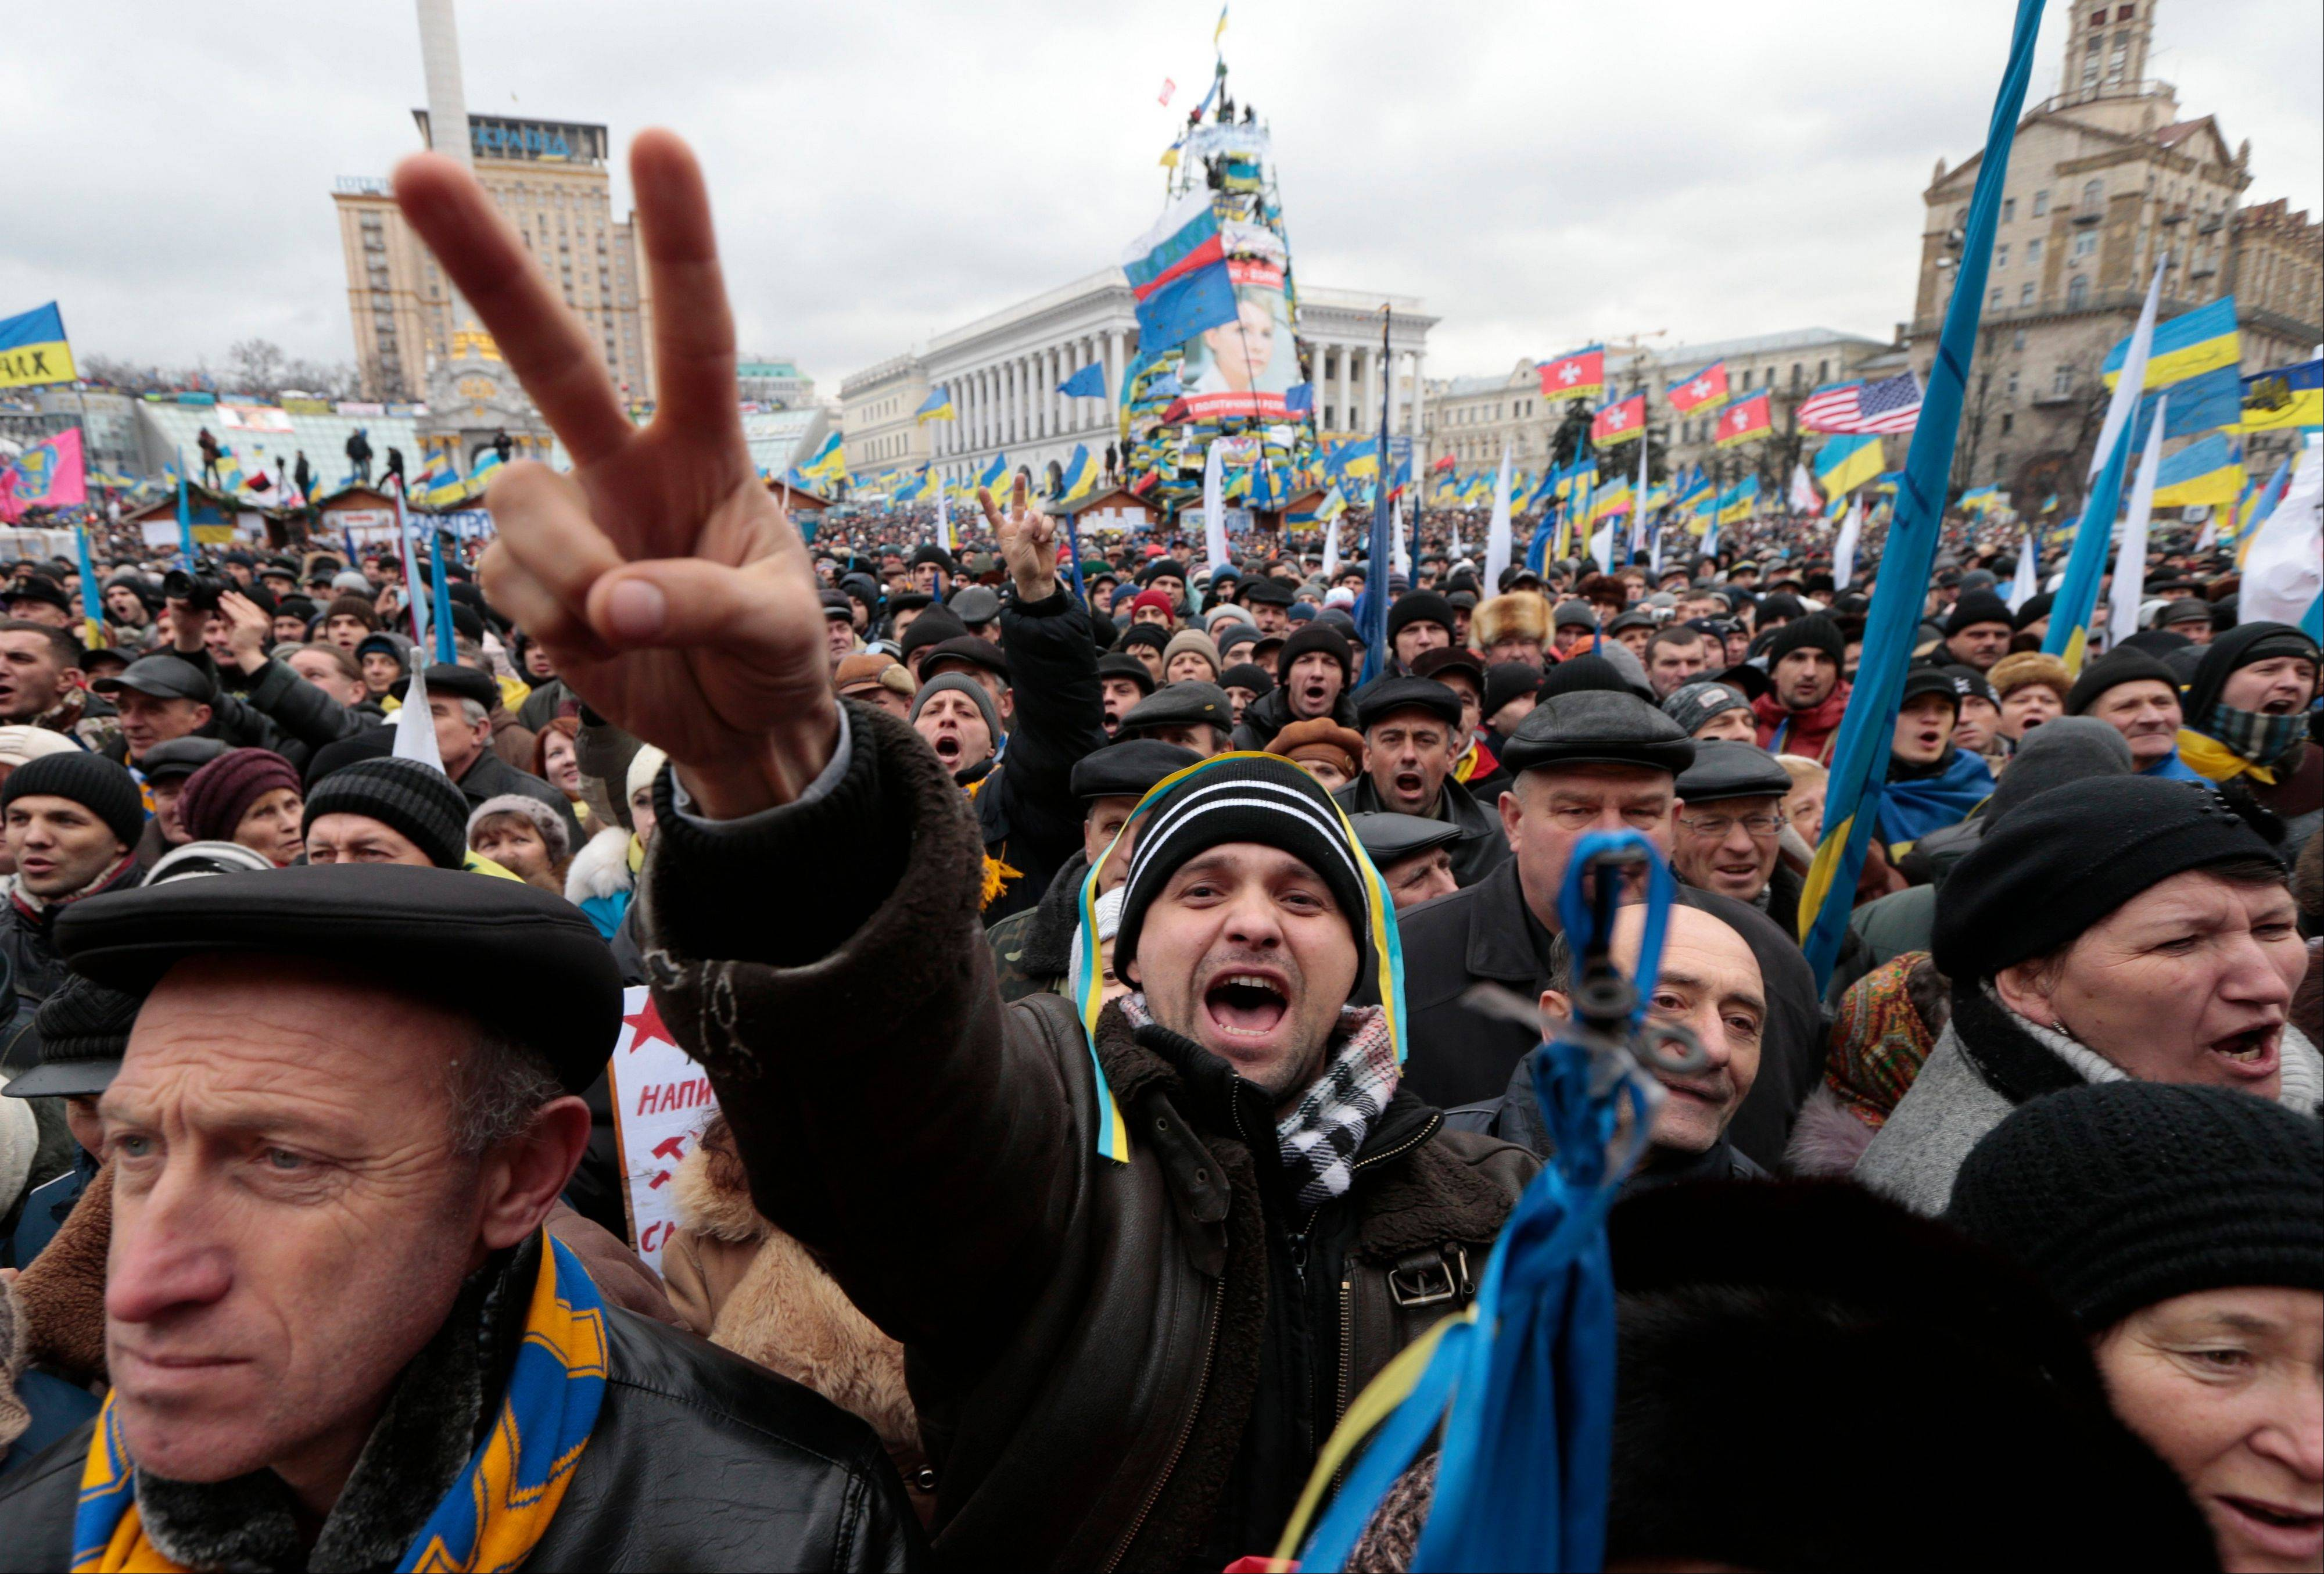 Pro-European Union activists shout slogans during a rally in the Independence Square, Kiev, Ukraine, Sunday. The third week of protests continue Sunday with an estimated 200,000 Ukrainians occupying central Kiev to denounce President Viktor Yanukovychís decision to turn away from Europe and align this ex-Soviet republic with Russia.